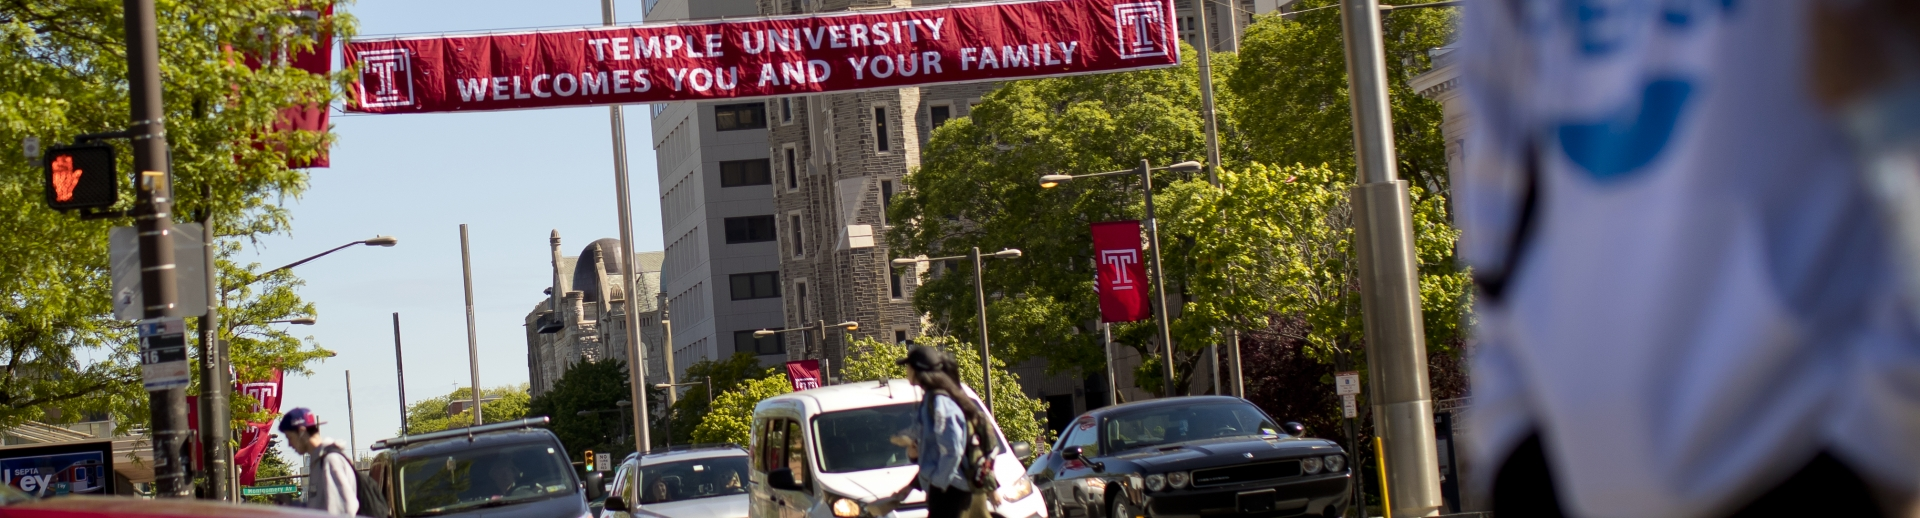 Temple University welcome banner stretched over Broad Street in Philadelphia.